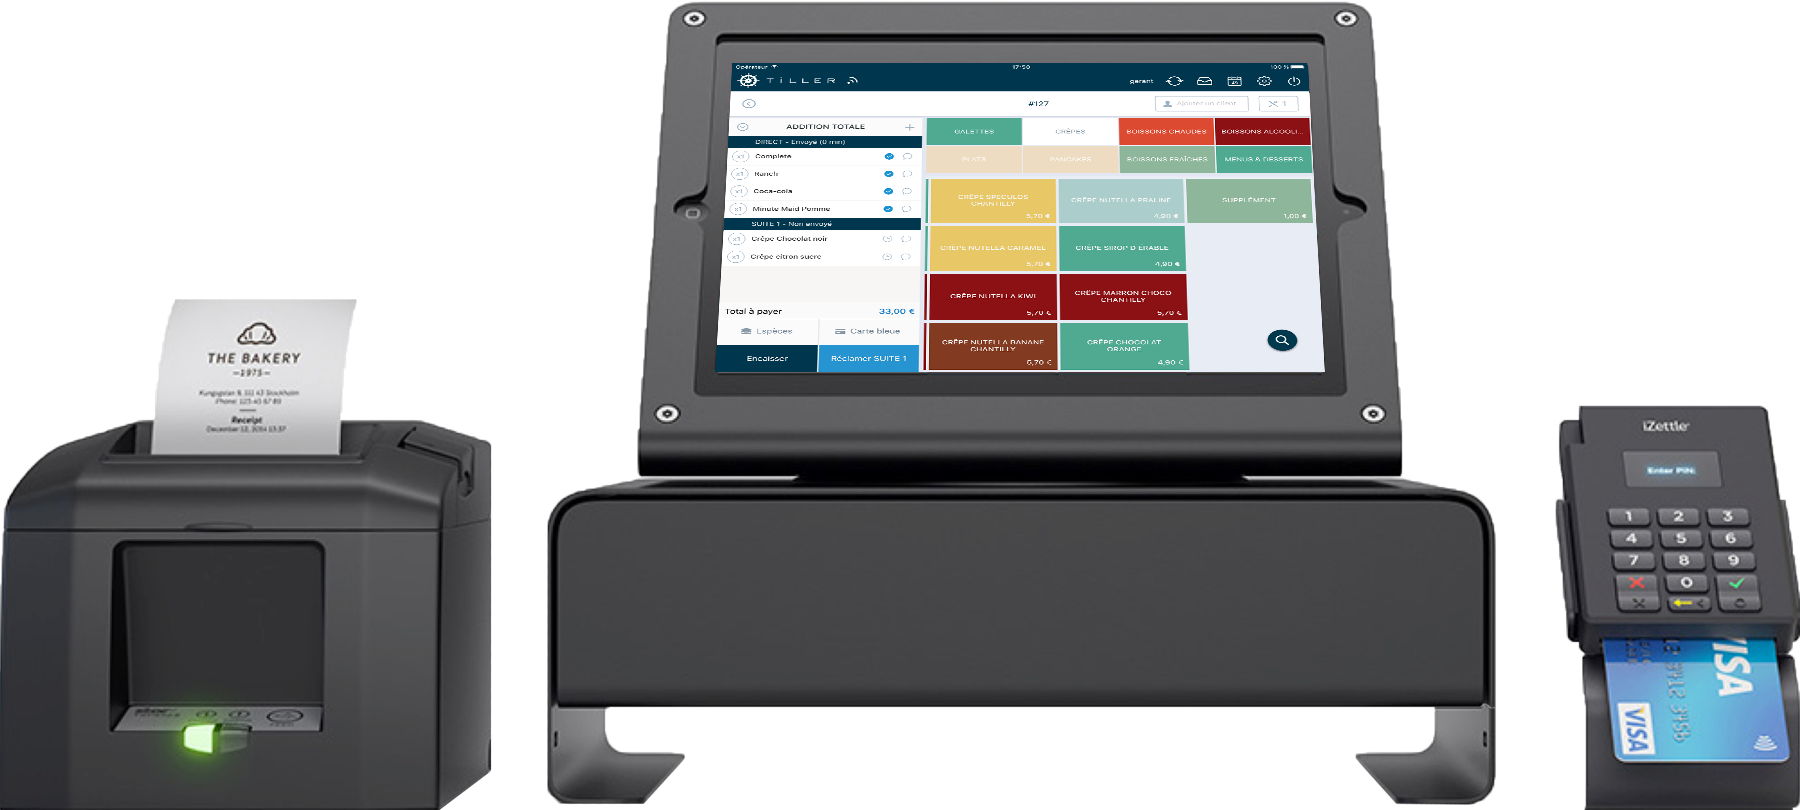 Tiller raises $13.9 million for its modern cash register